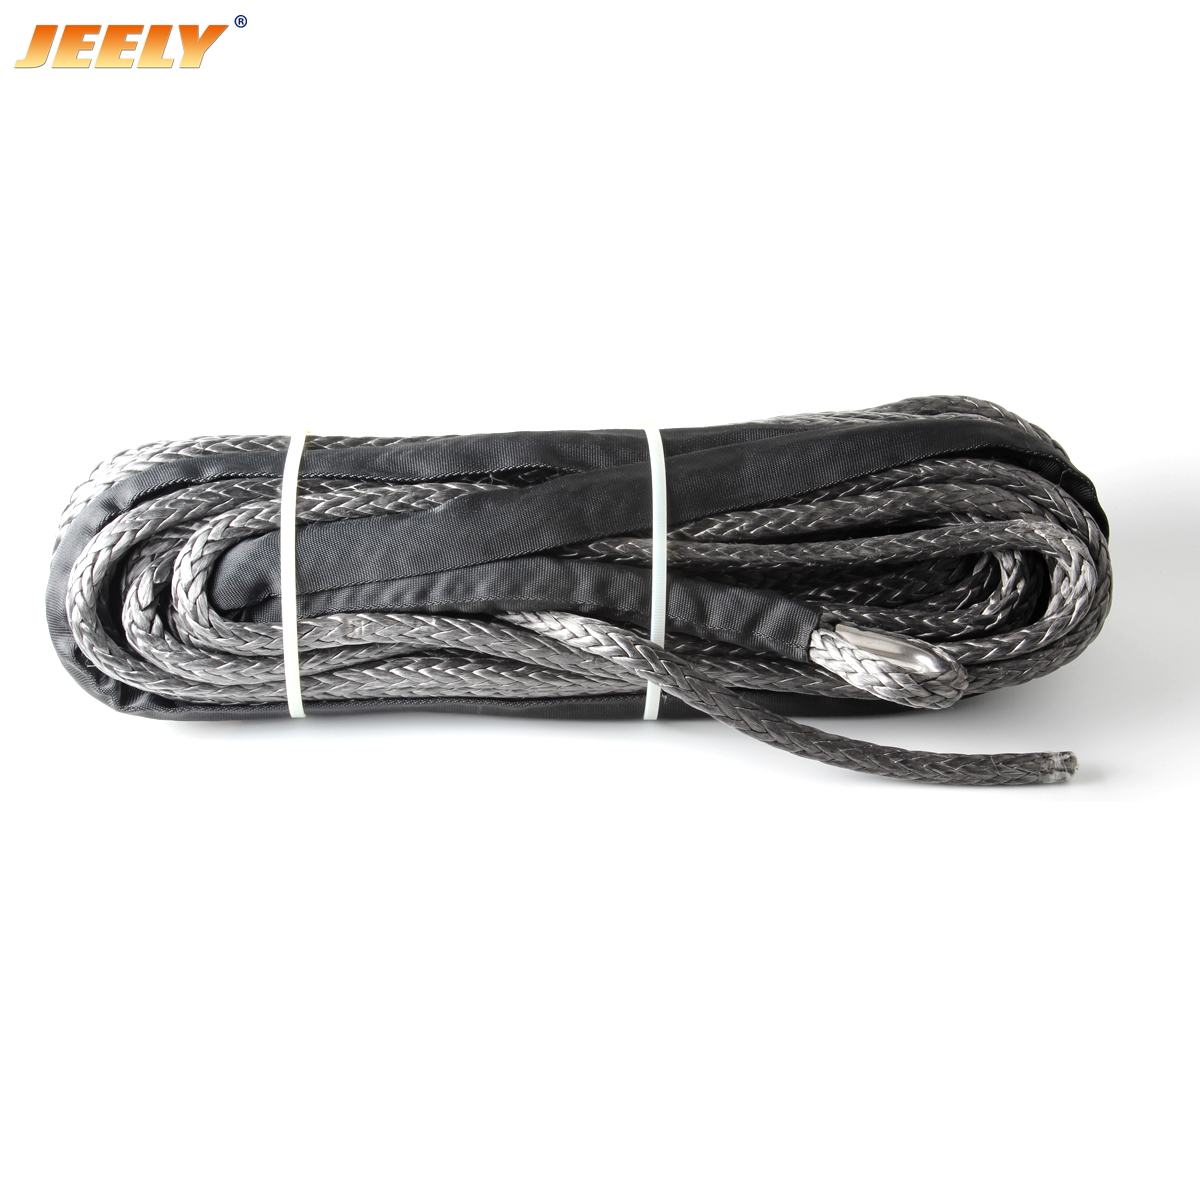 6mm*24m 12 strand off-road uhmwpe synthetic towing winch rope with 1.5m sleeve and thimble for ATV/UTV/SUV/4X4/4WD